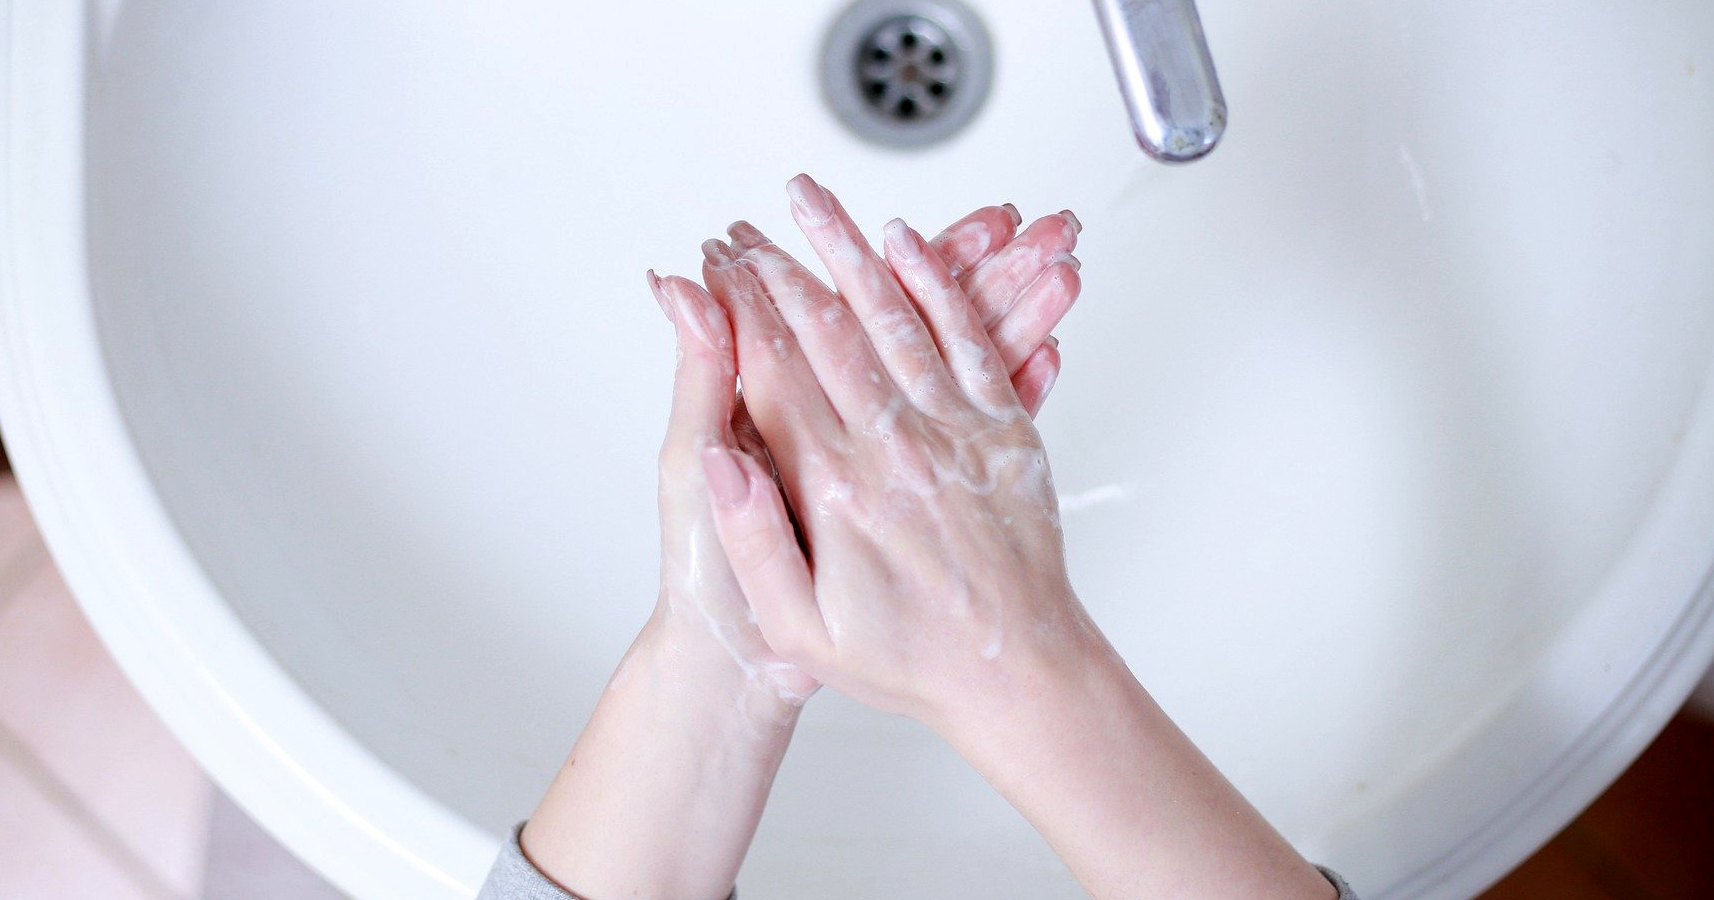 Top view of sink and woman's hands washing